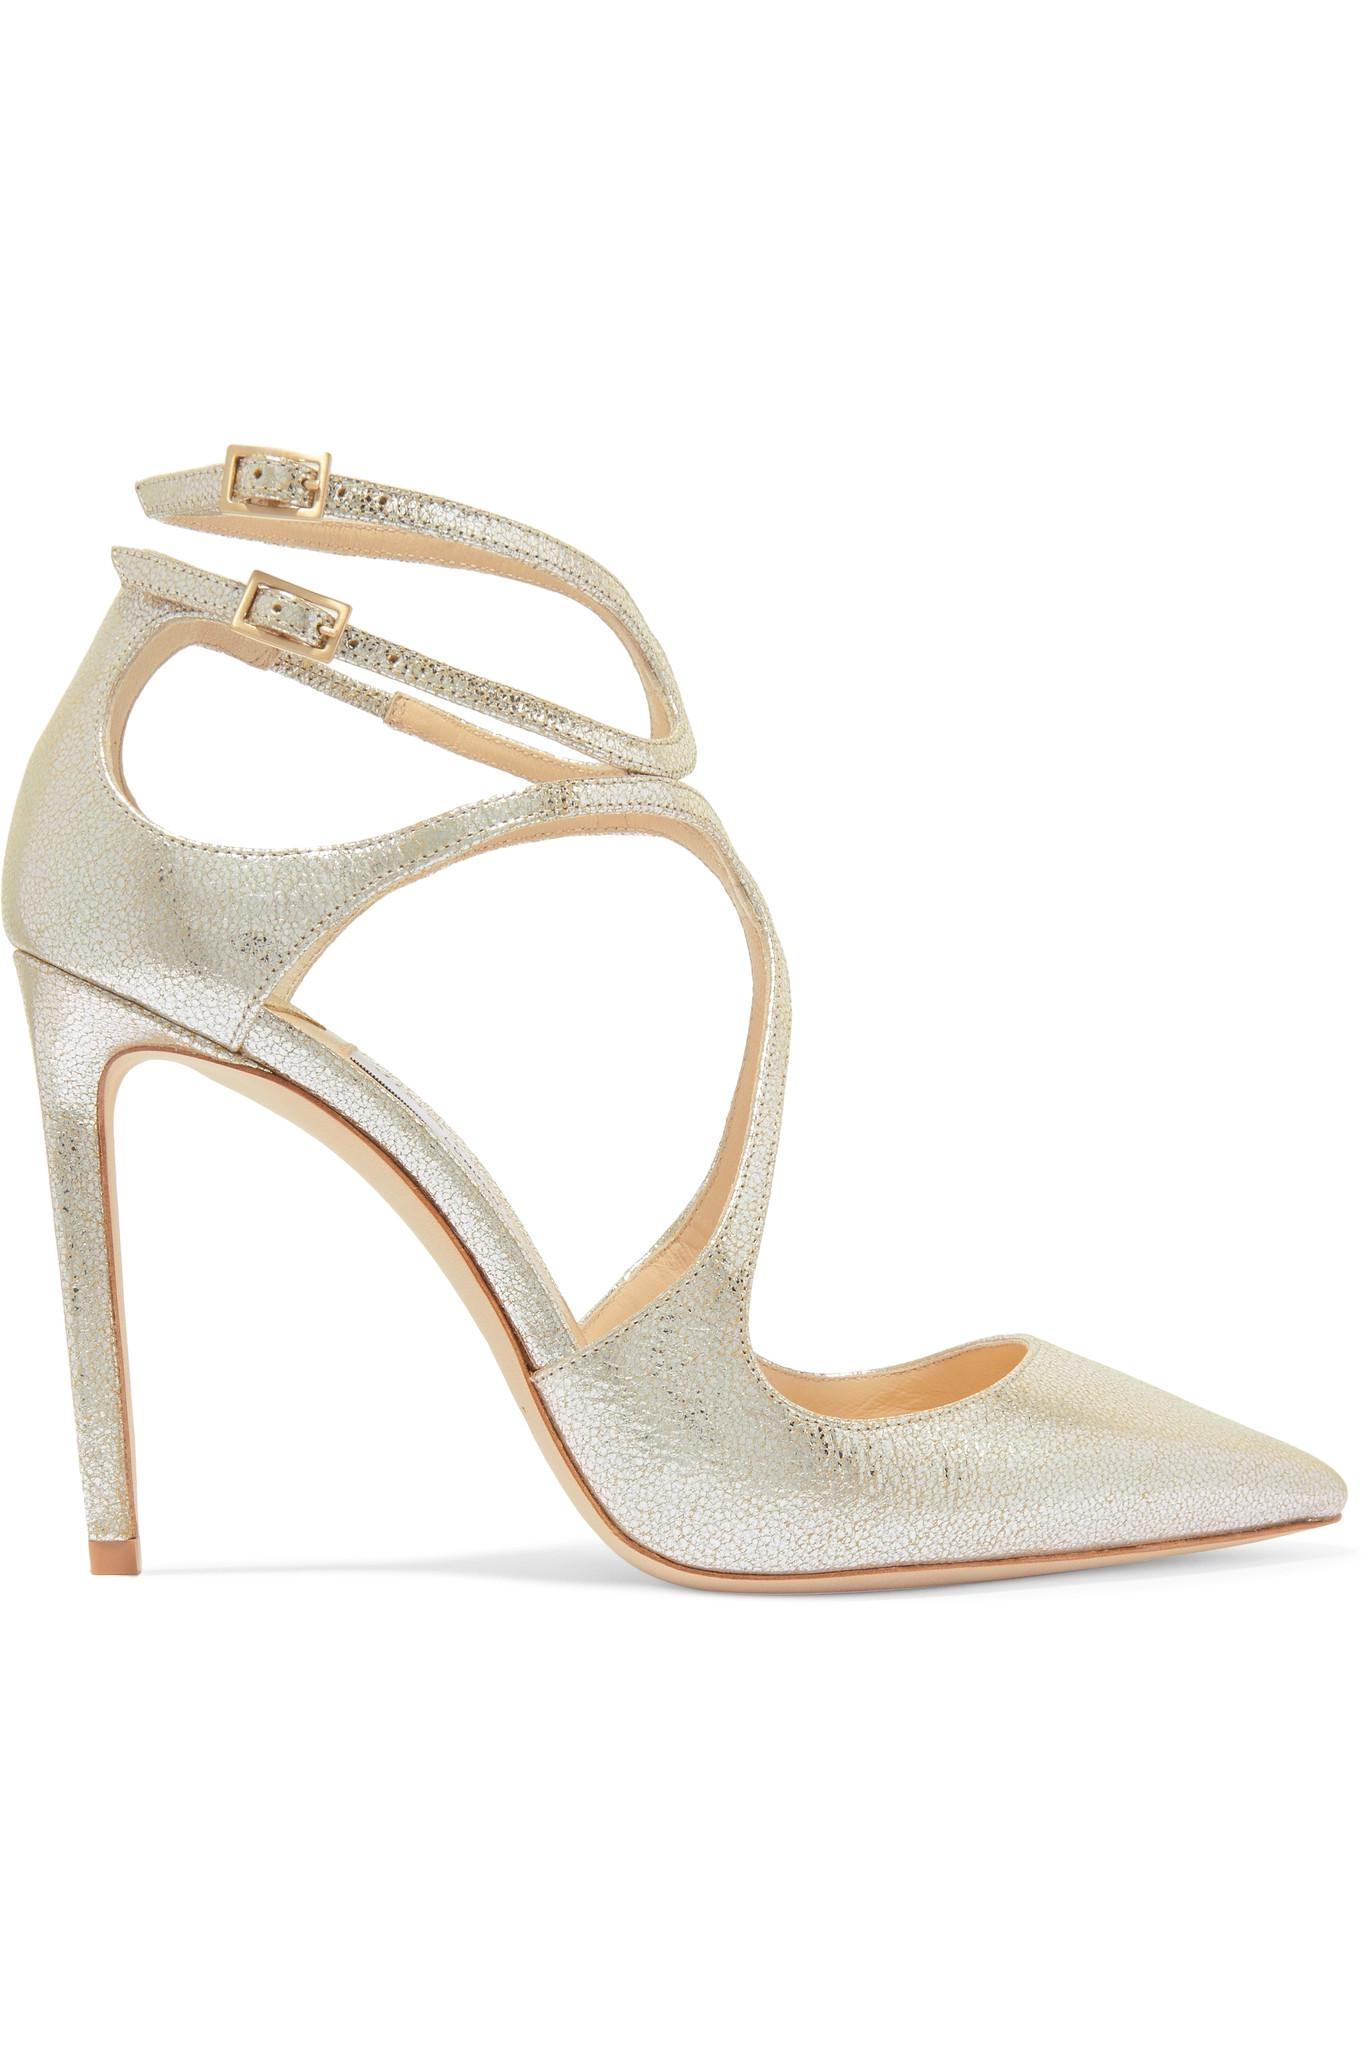 402a742553a4 Lyst - Jimmy Choo Lancer Metallic Cracked-leather Pumps in Metallic